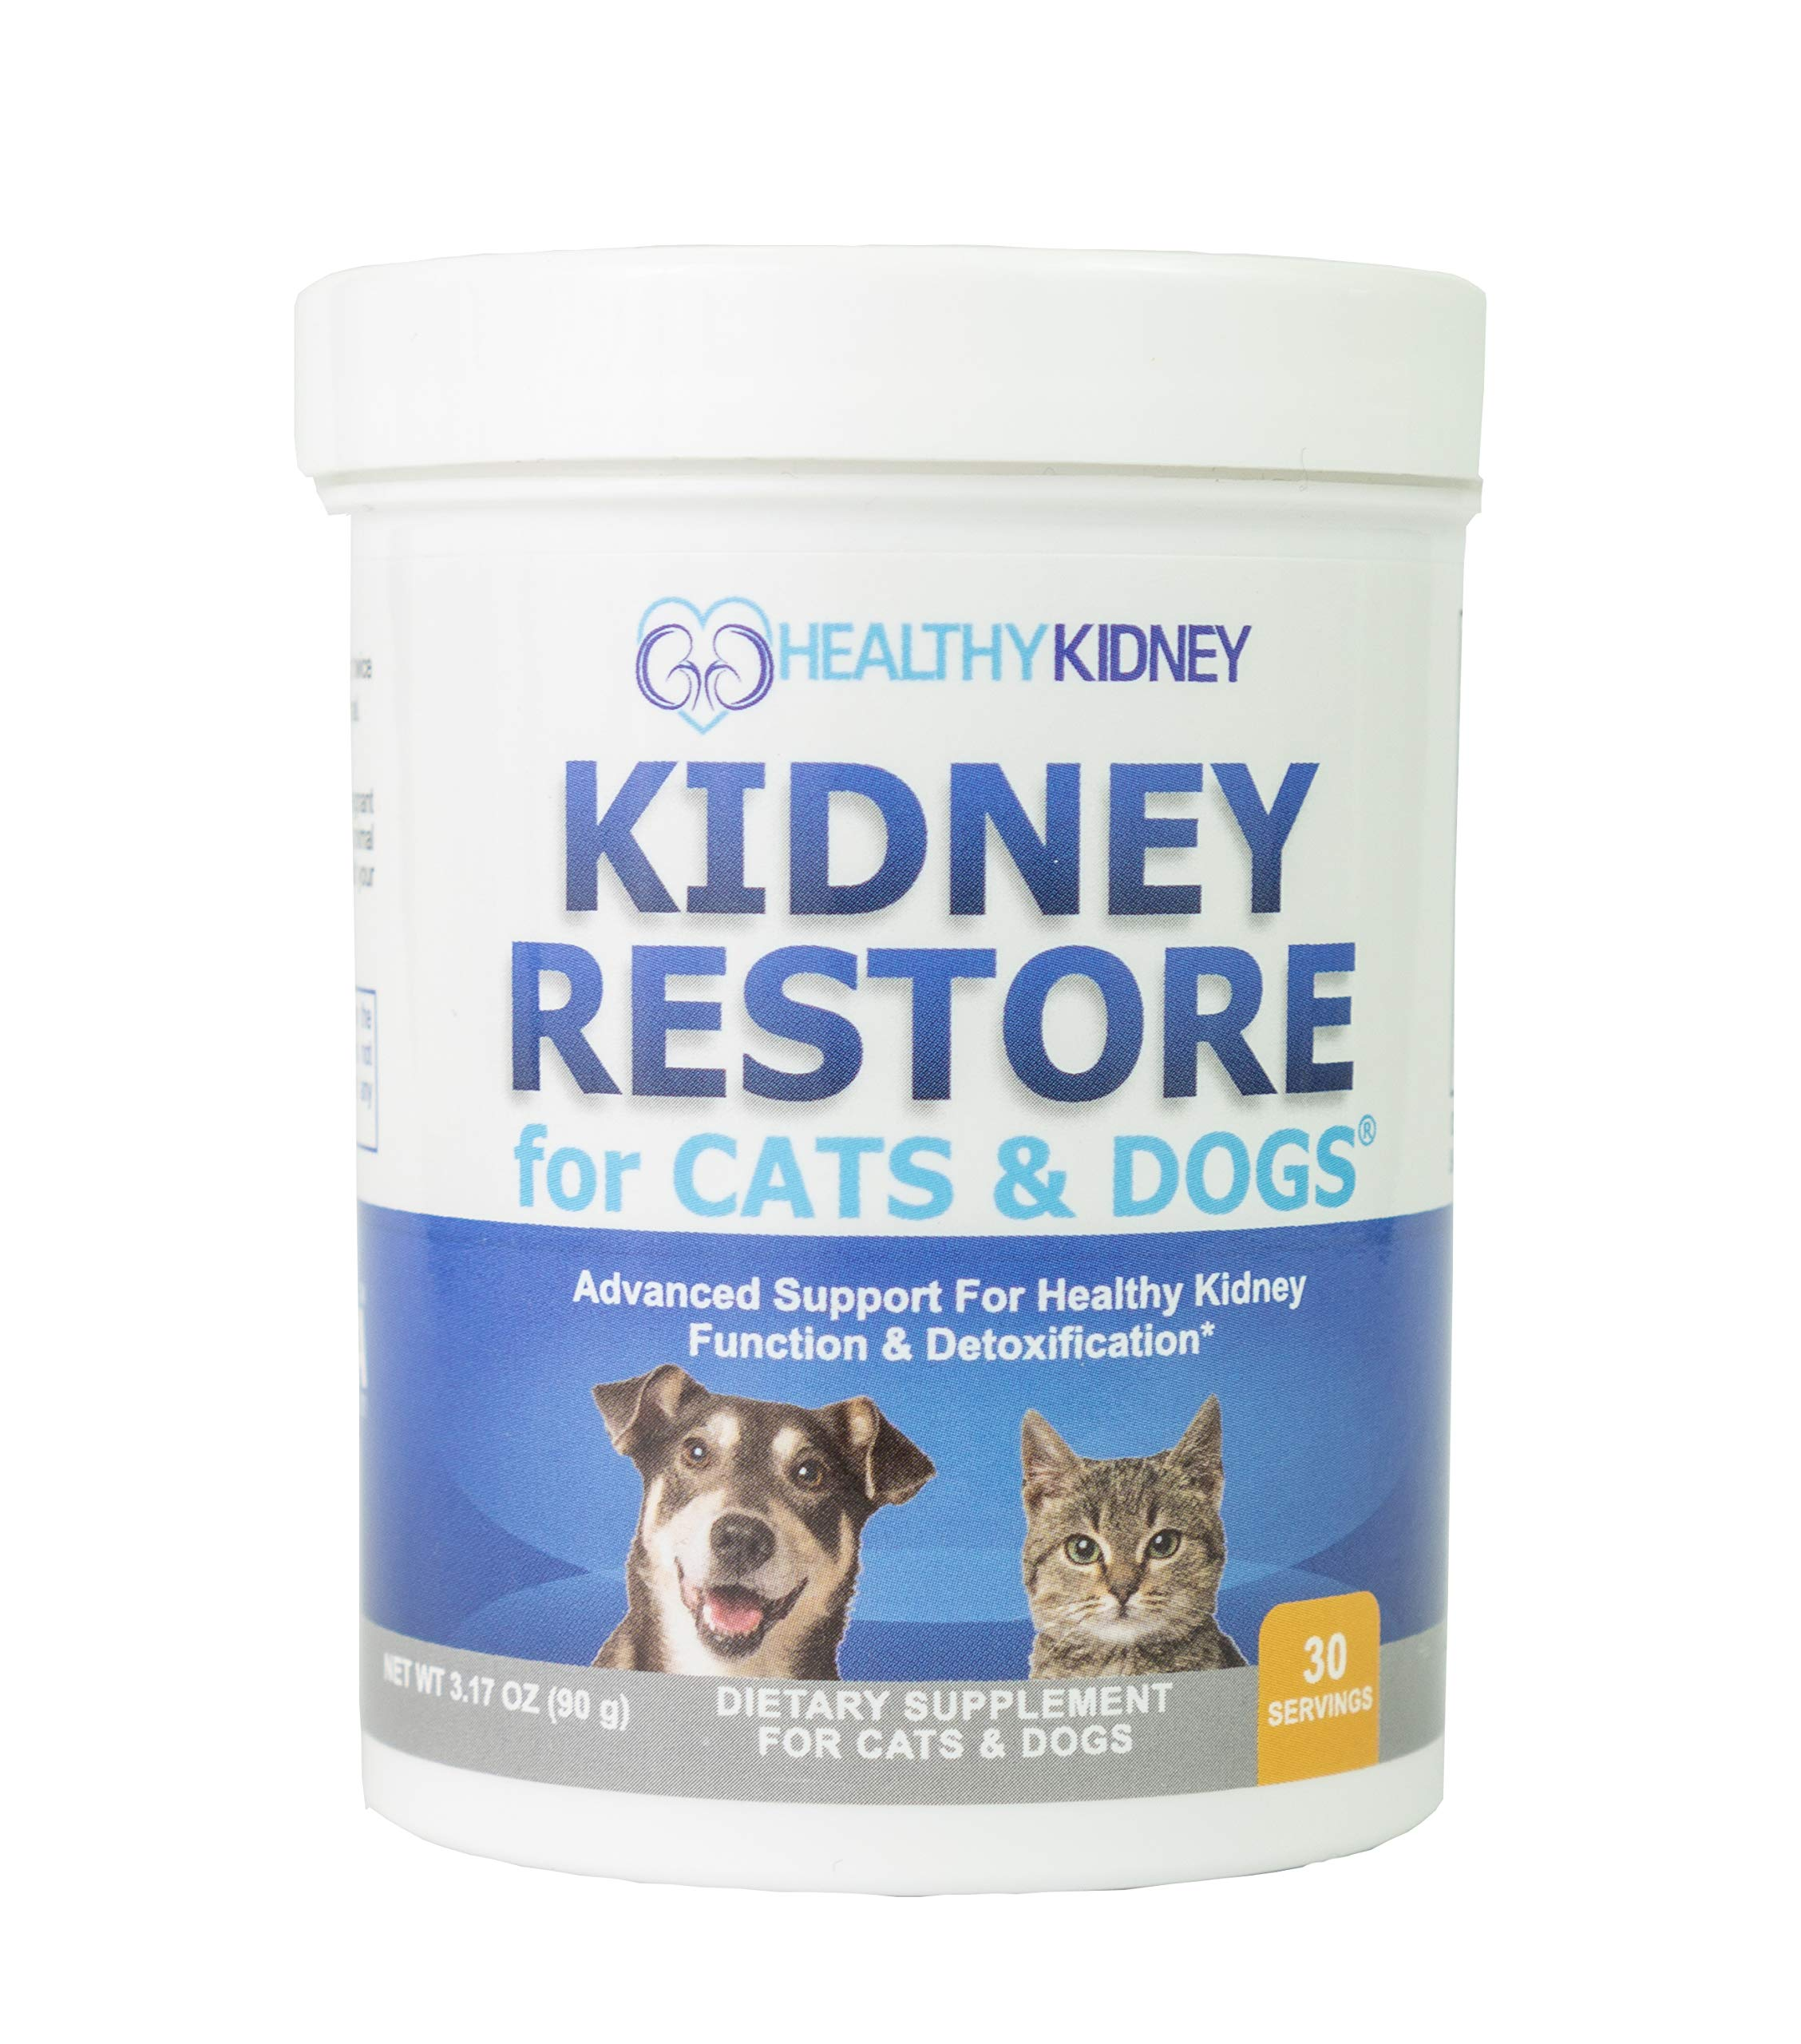 Cat and Dog Kidney Support, Natural Renal Supplements to Support Pets, Feline, Canine Healthy Kidney Function and Urinary Track. Essential for Pet Health, Pet Alive, Easy to Add to Cats and Dogs Food by Kidney Restore